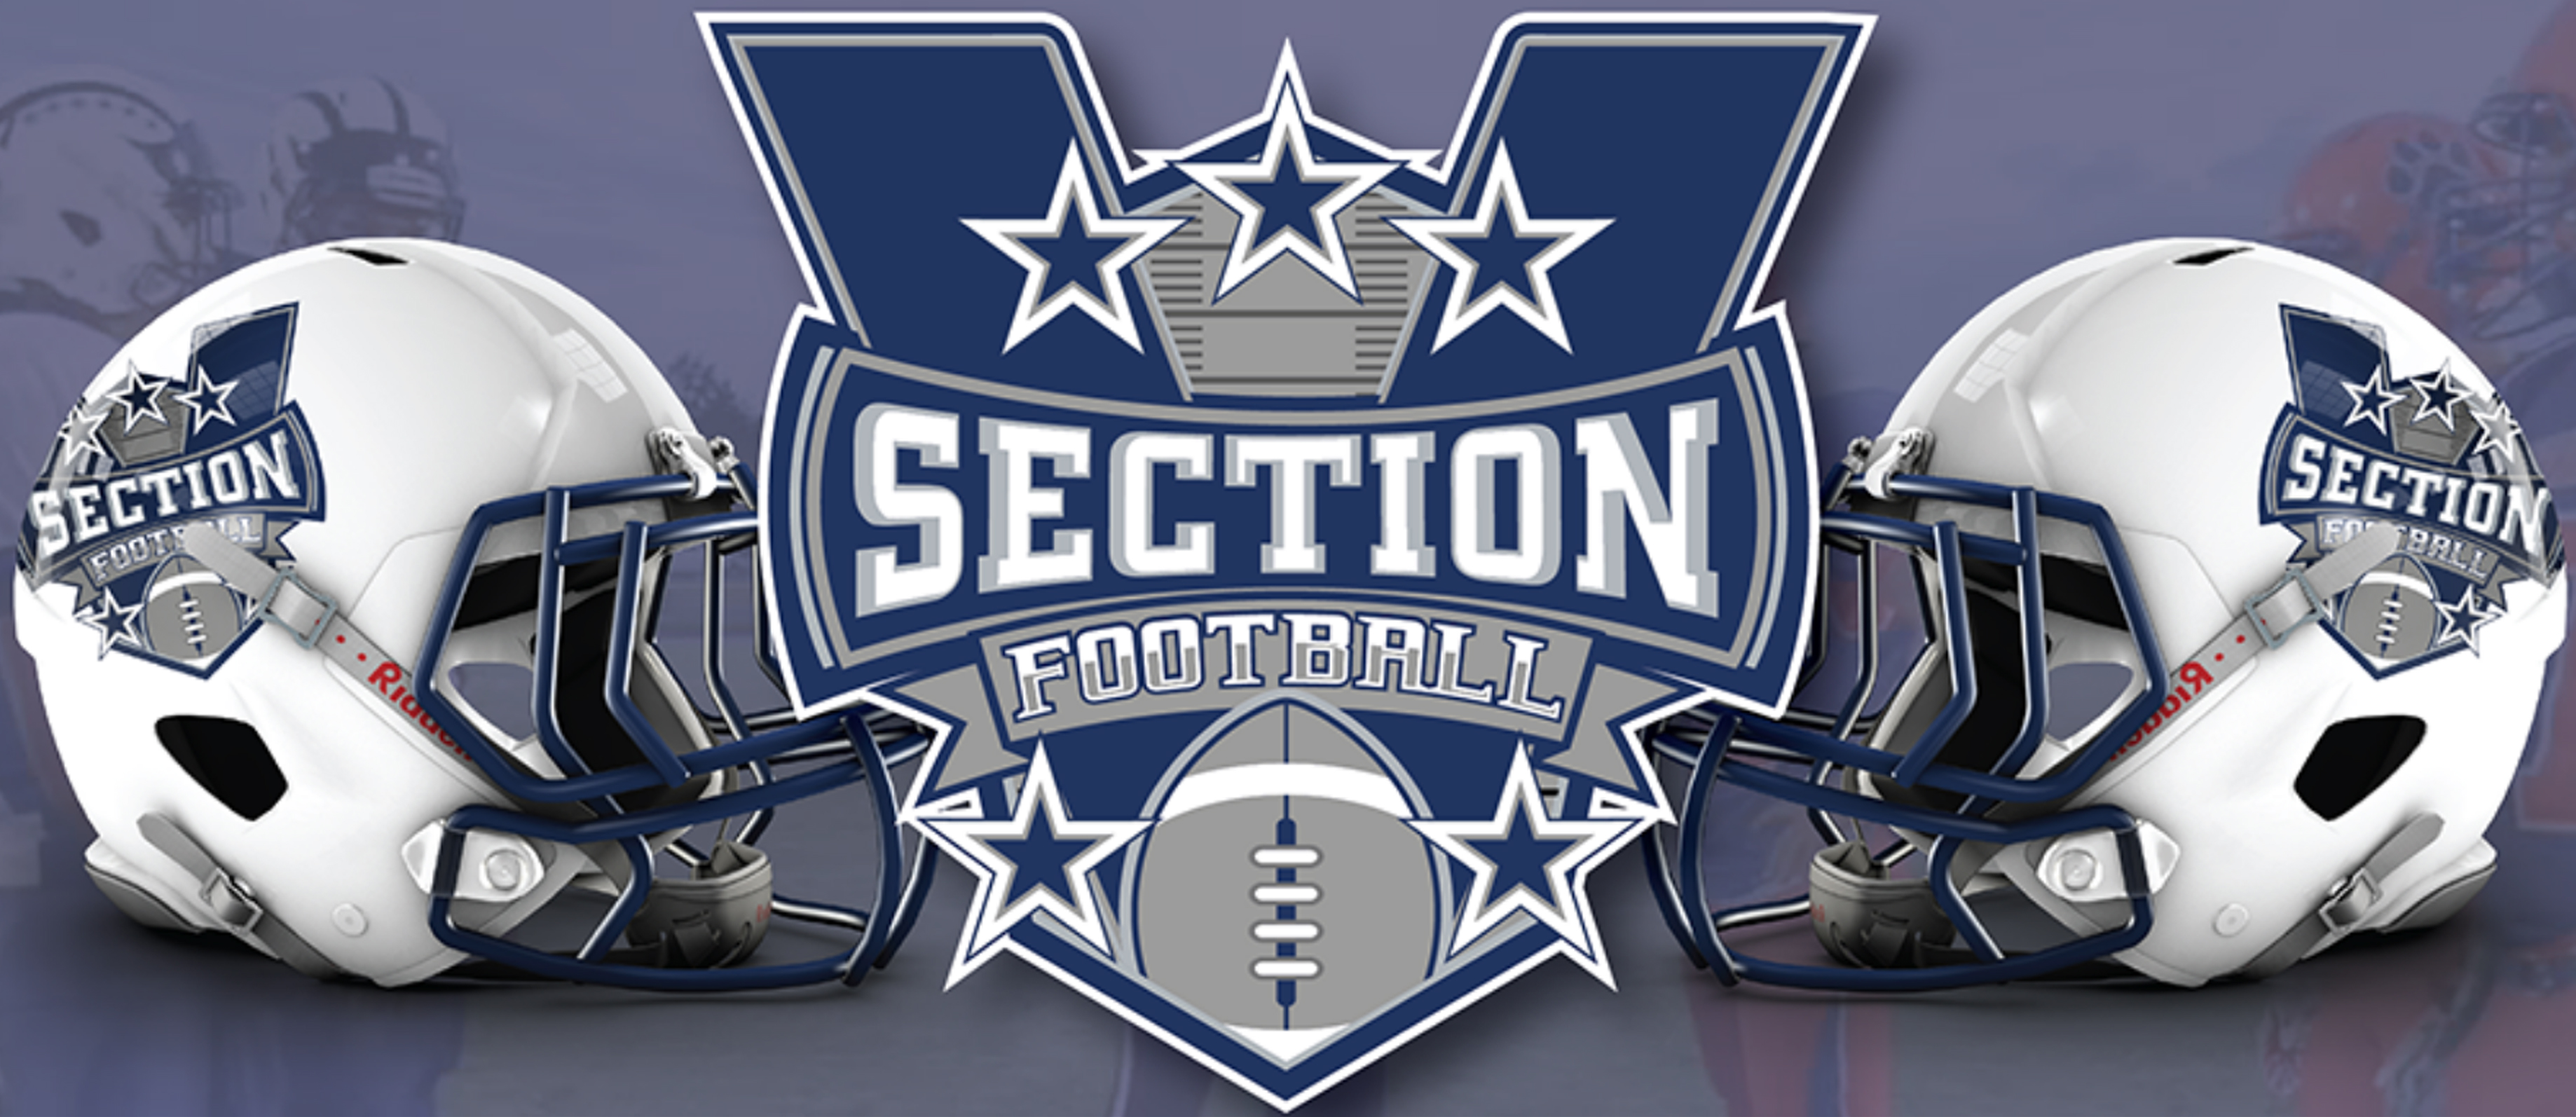 Section V Releases 2020 High School Football Schedules Fingerlakes1 Com